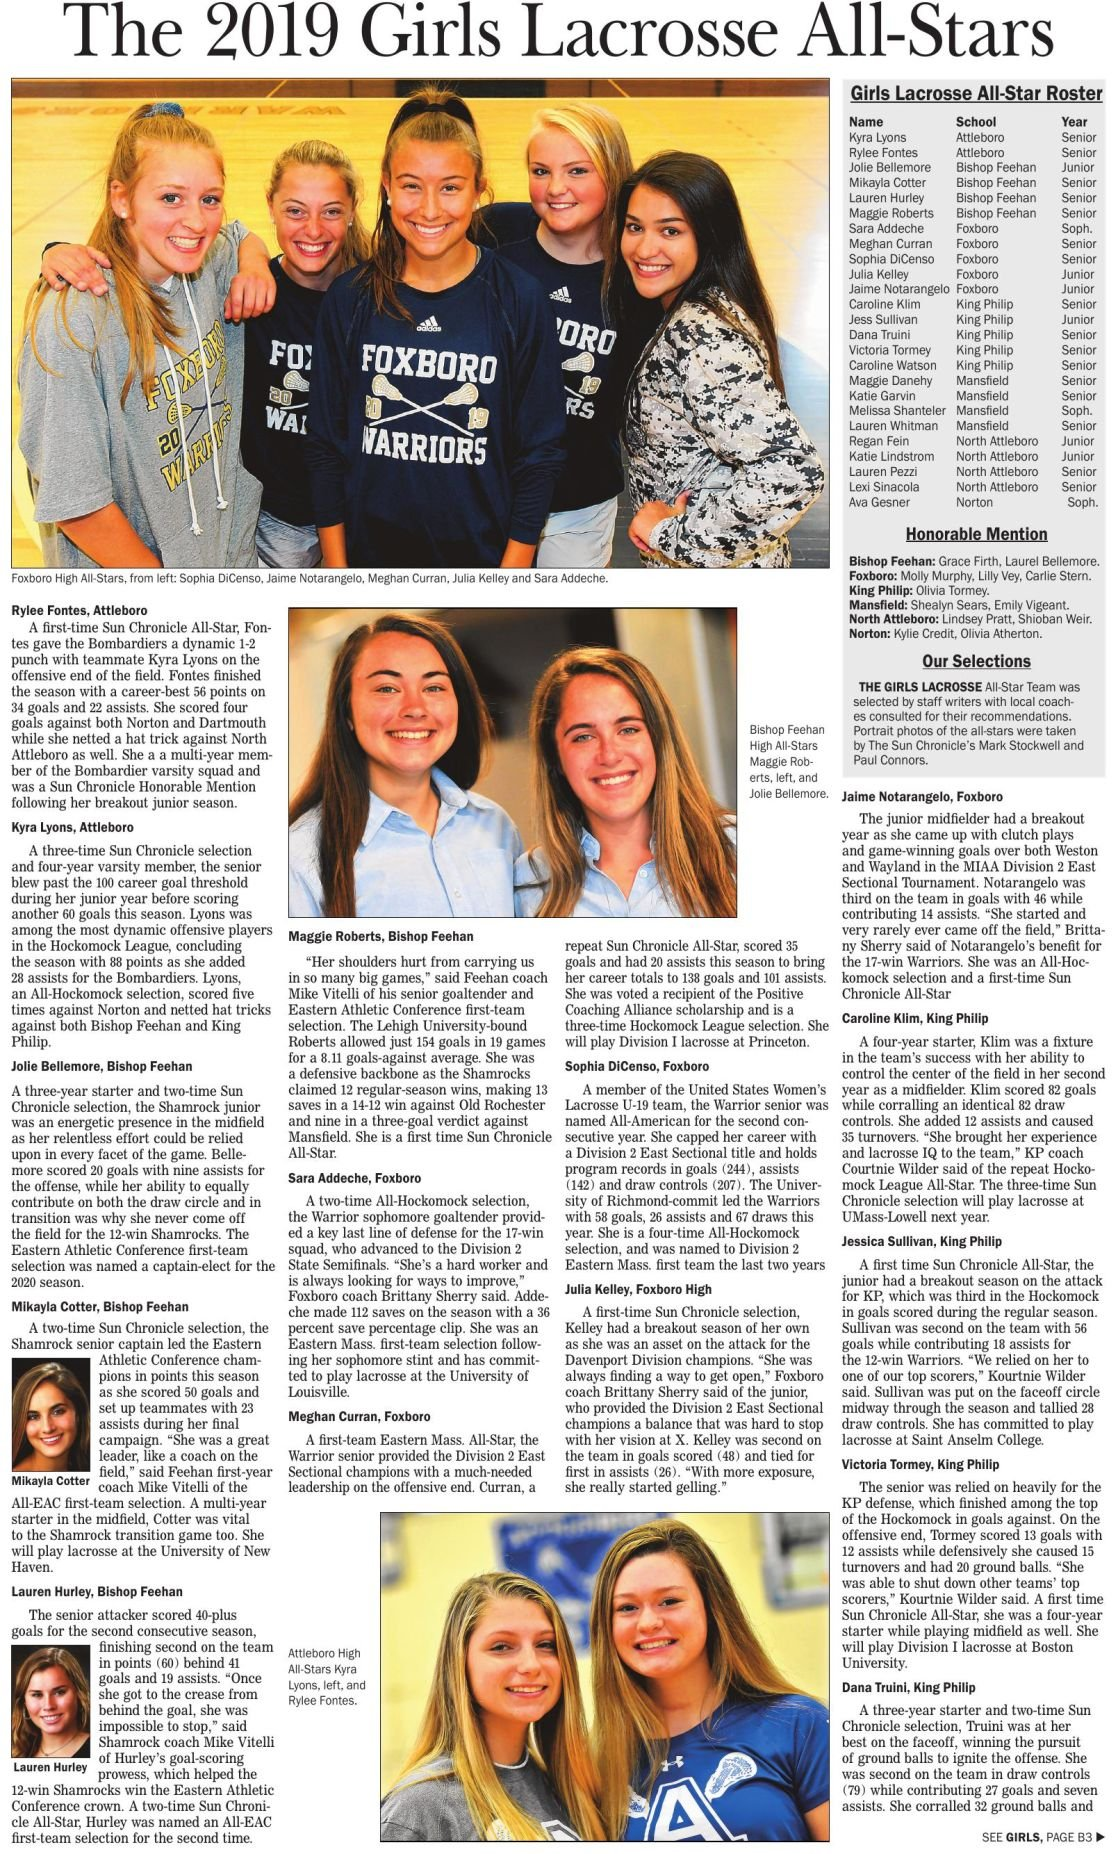 The Sun Chronicle 2019 Girls Lacrosse All-Stars 1